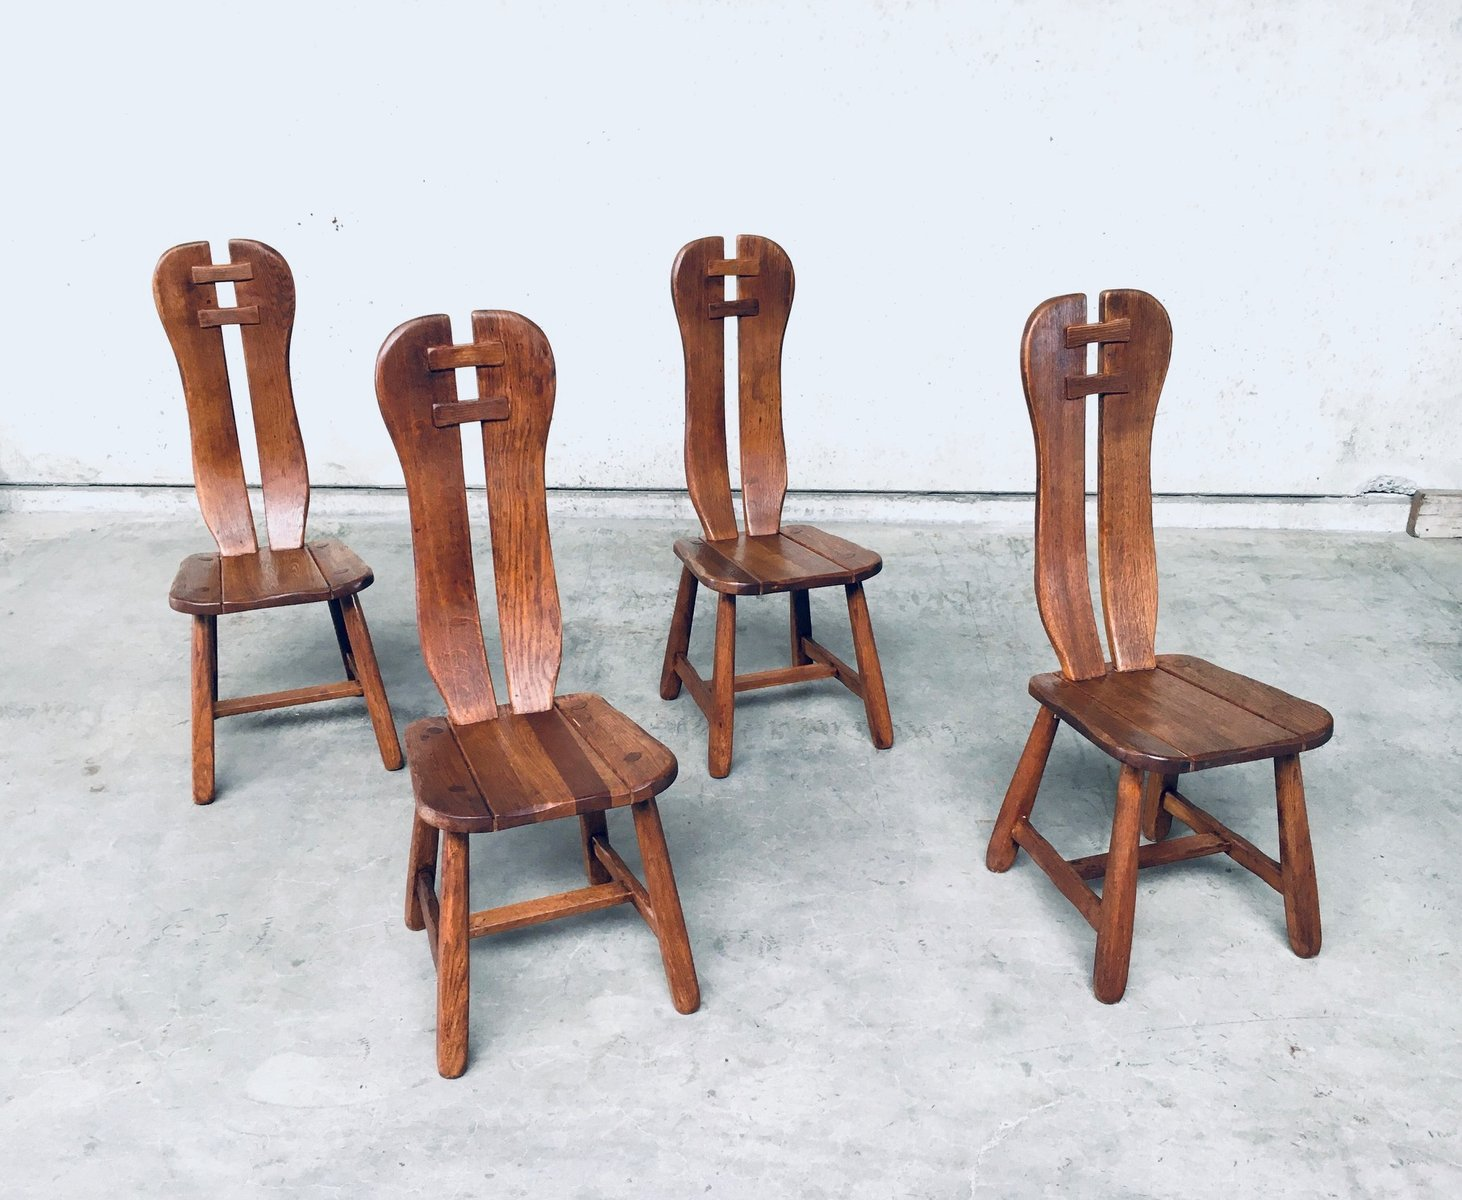 Brutalist Oak Dining Chairs From De Puydt Belgium 1960s Set Of 4 For Sale At Pamono